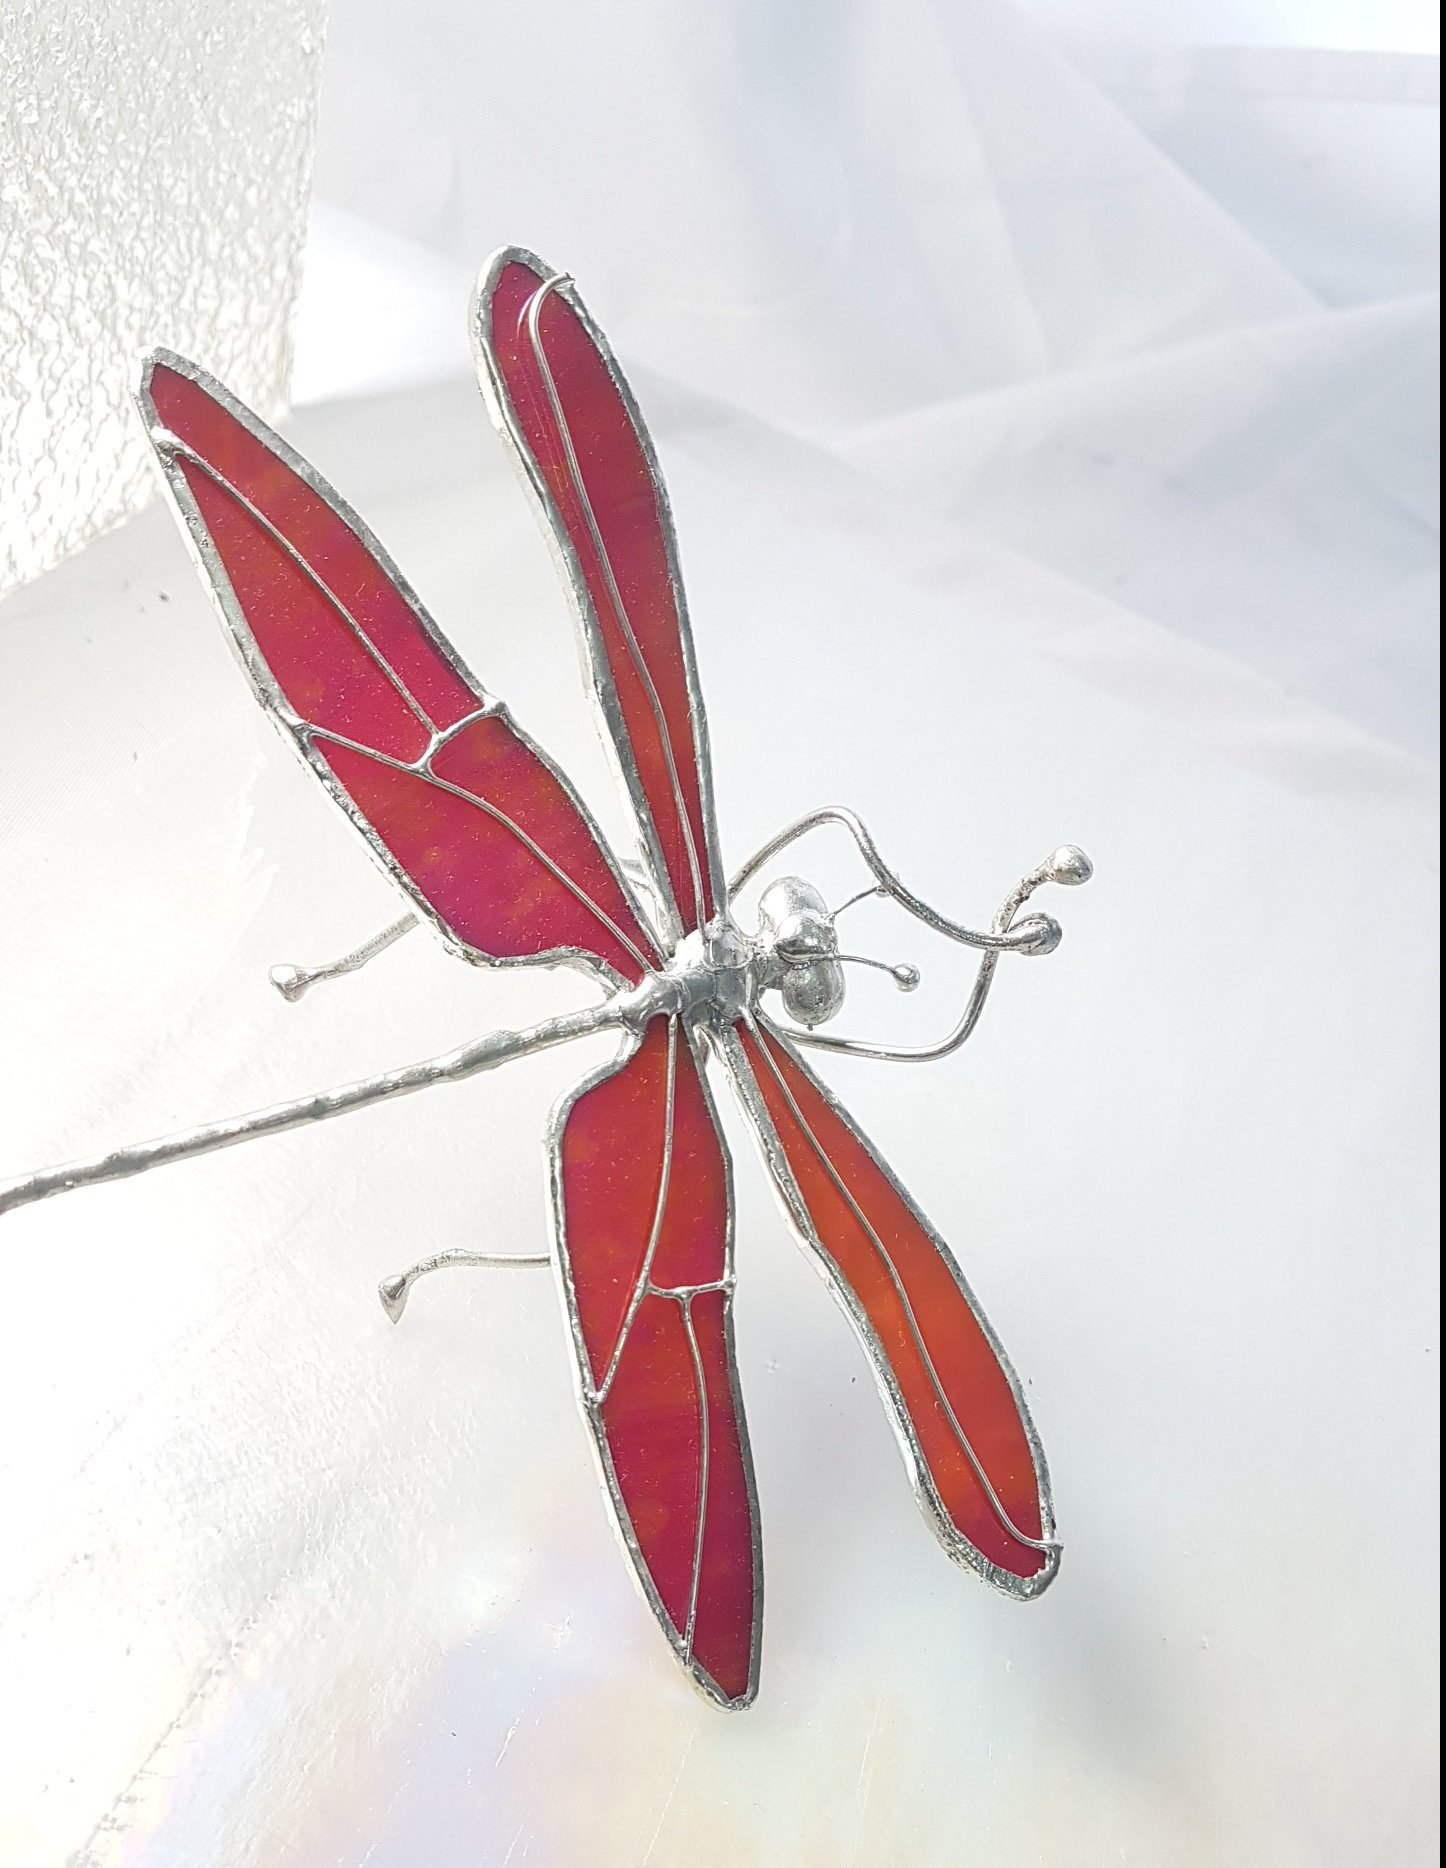 Y46d Real Iridescent Wing Dragonfly Odonates sp Spread 3\u201d Glass Dome specimen Insect Curiosity Oddity Display Collectible Educational